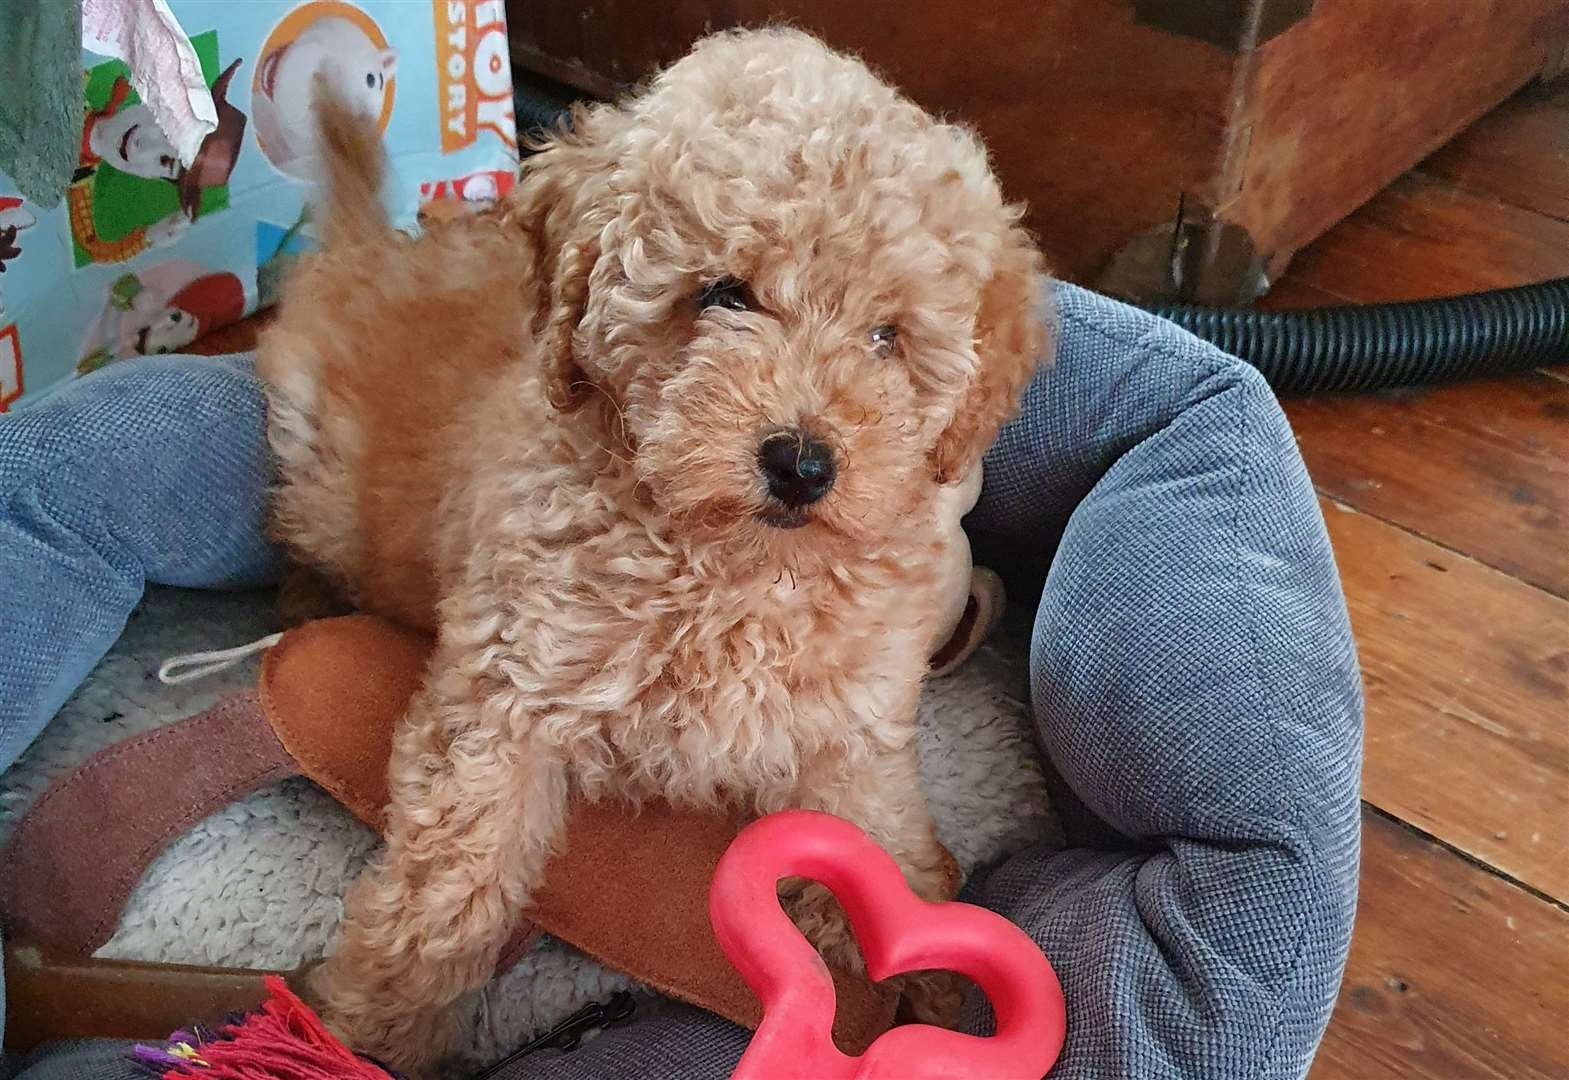 Cockapoo puppies like this one can cost about £2,500